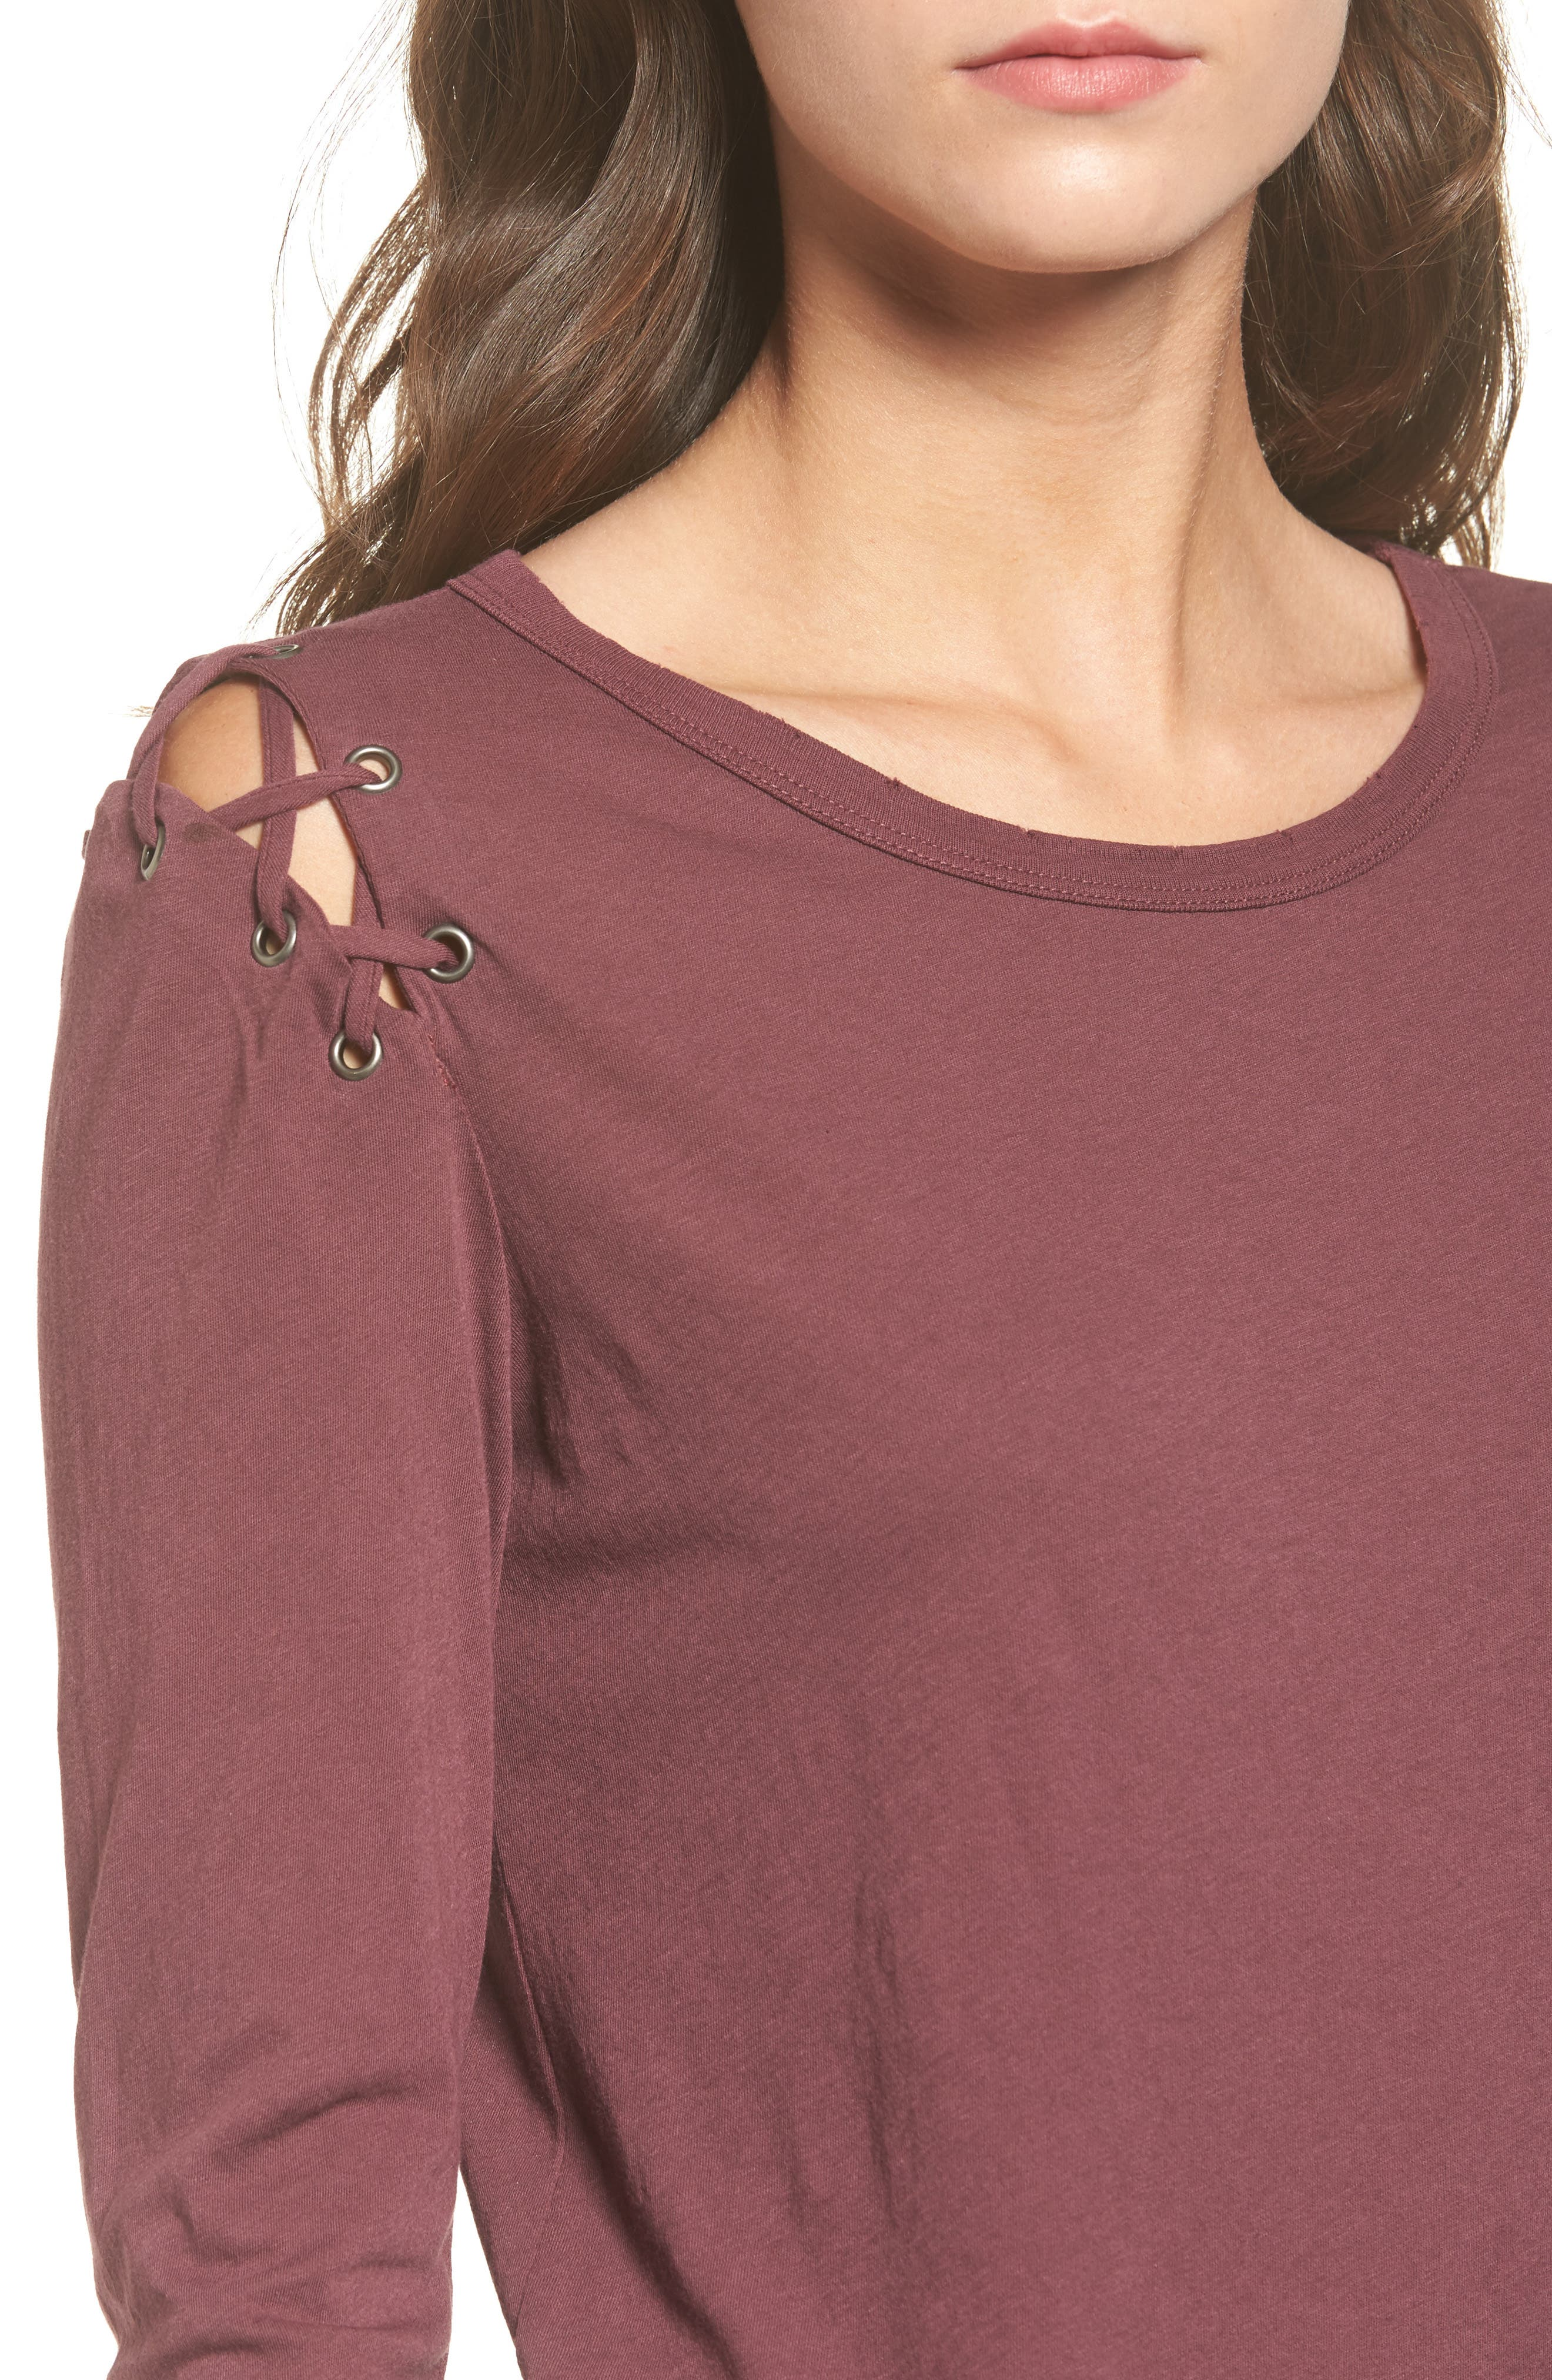 Darcia Lace-Up Tee,                             Alternate thumbnail 4, color,                             930